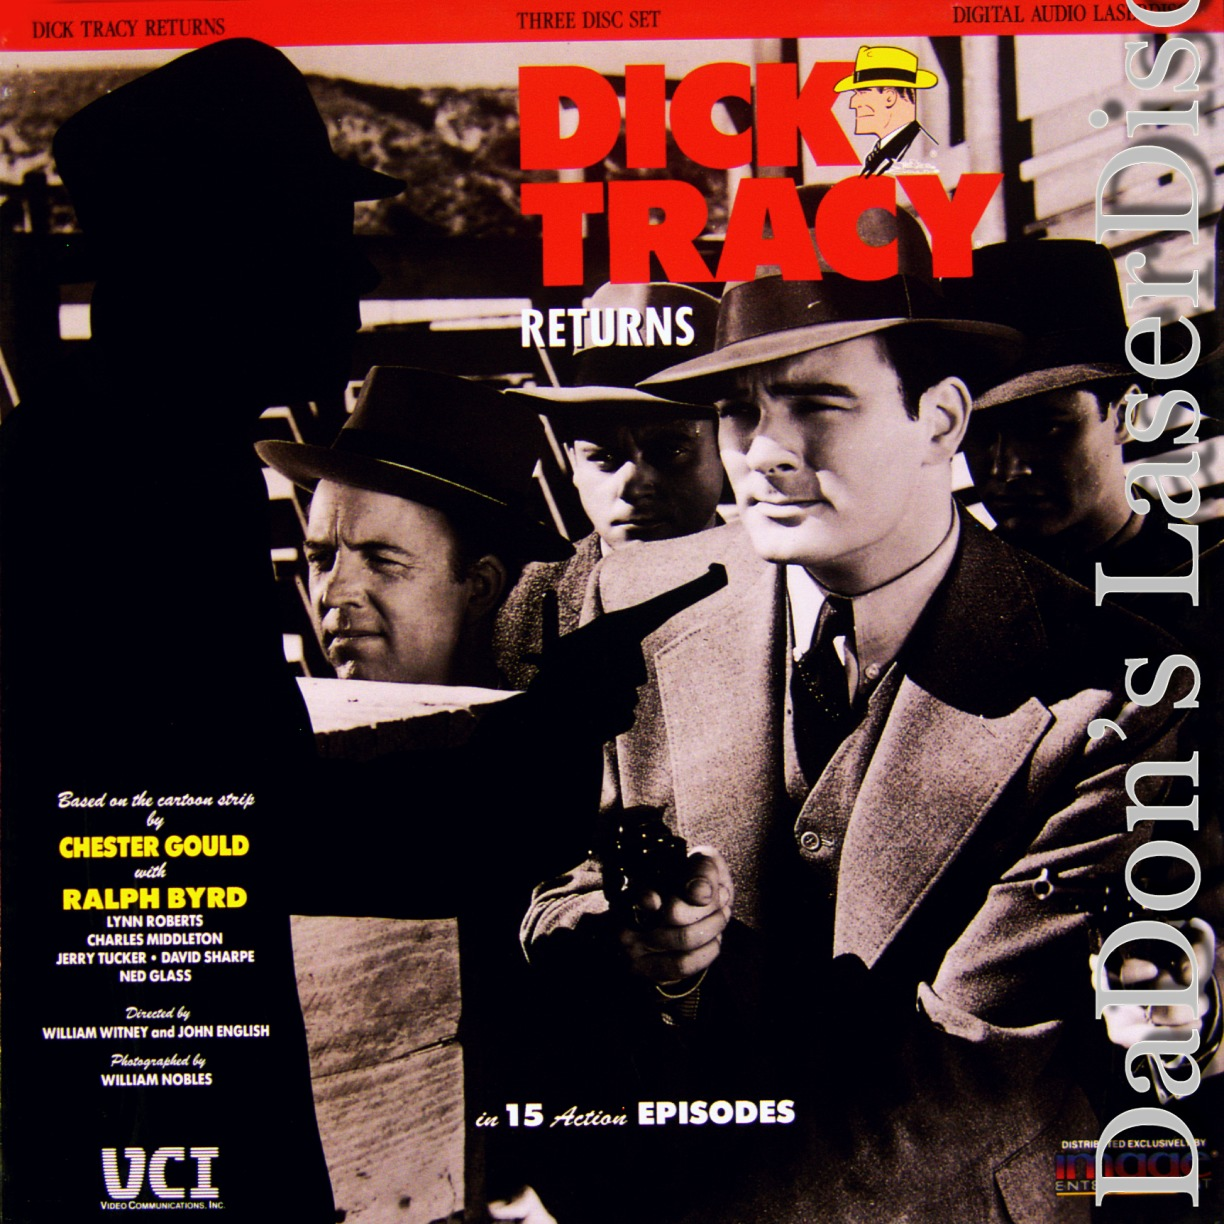 returns Dick tracy